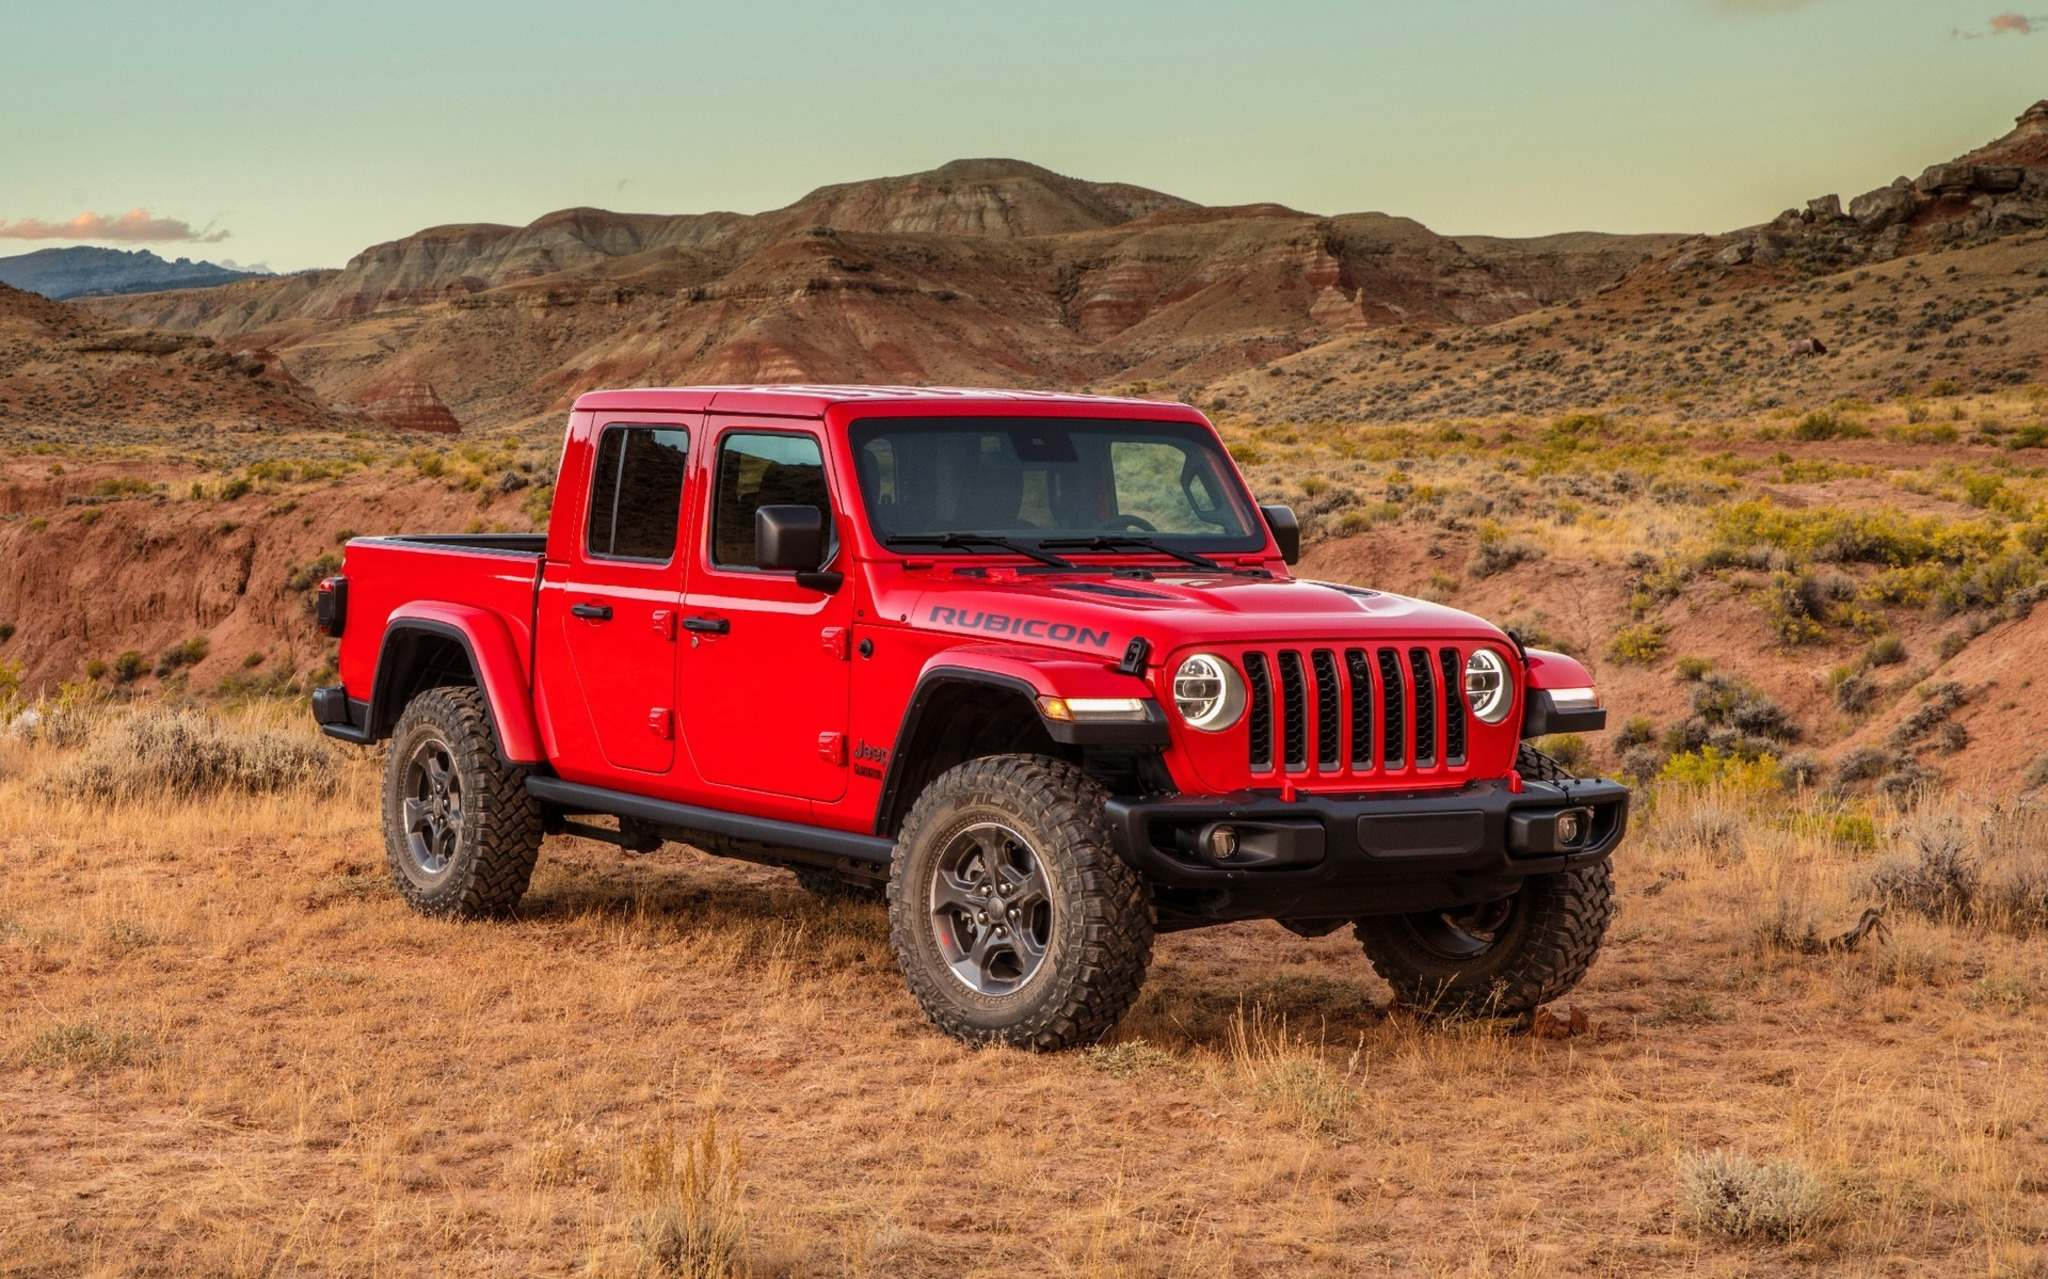 FCA The 2020 Jeep Gladiator shares a platform, interior and front end with the 2019 Wrangler, but the similarities end there. The vehicle's rear features the traditional pickup truck bed with either a hardtop roof or an optional removable soft top.